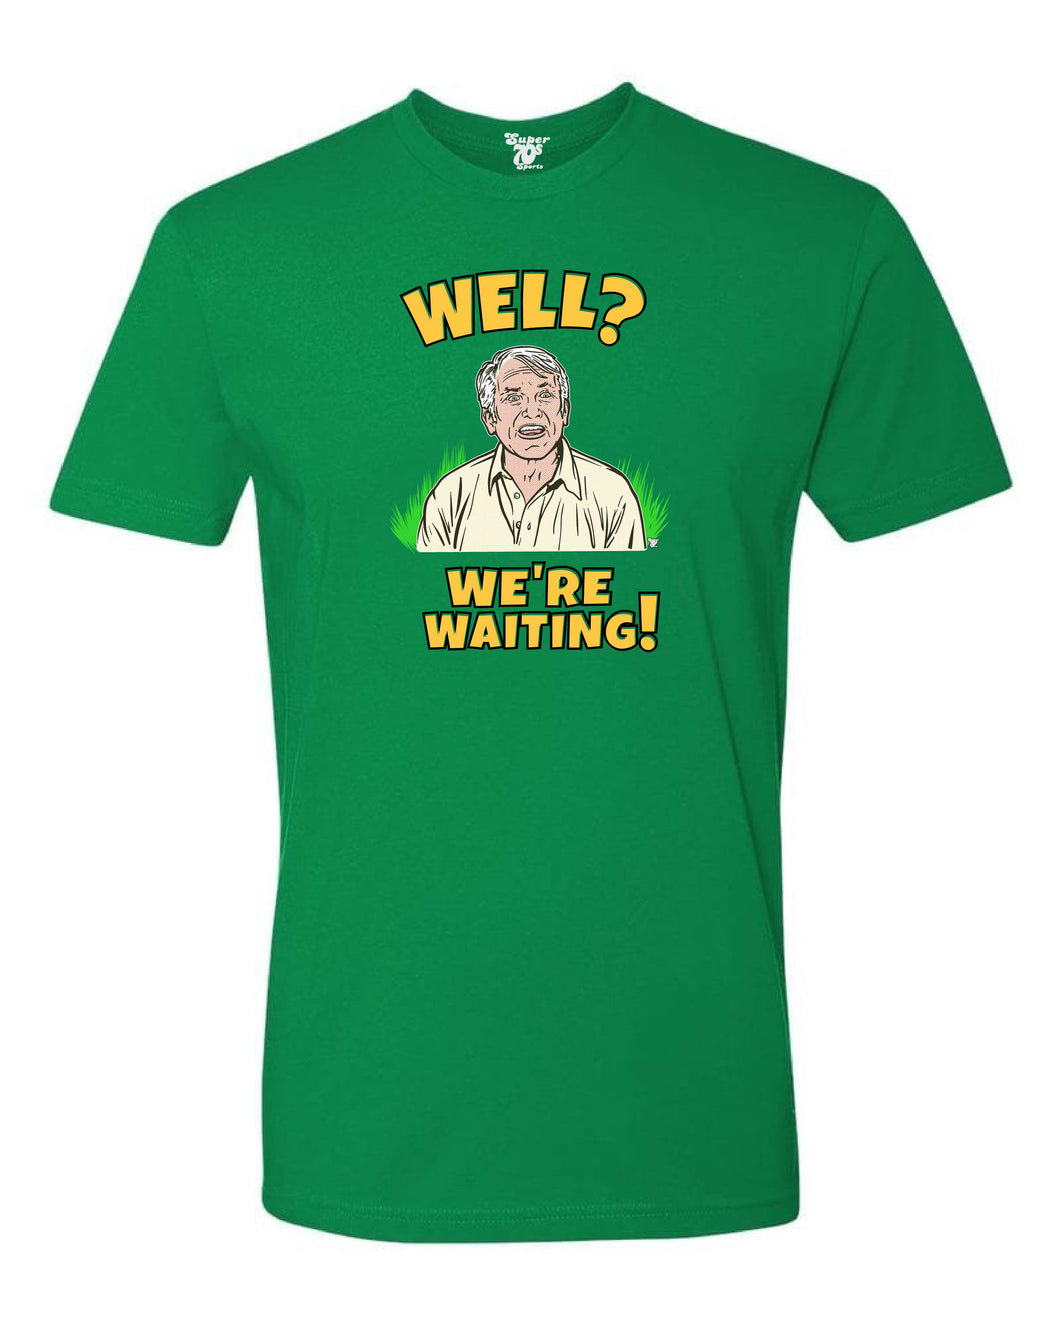 S7S Well We're Waiting Tee